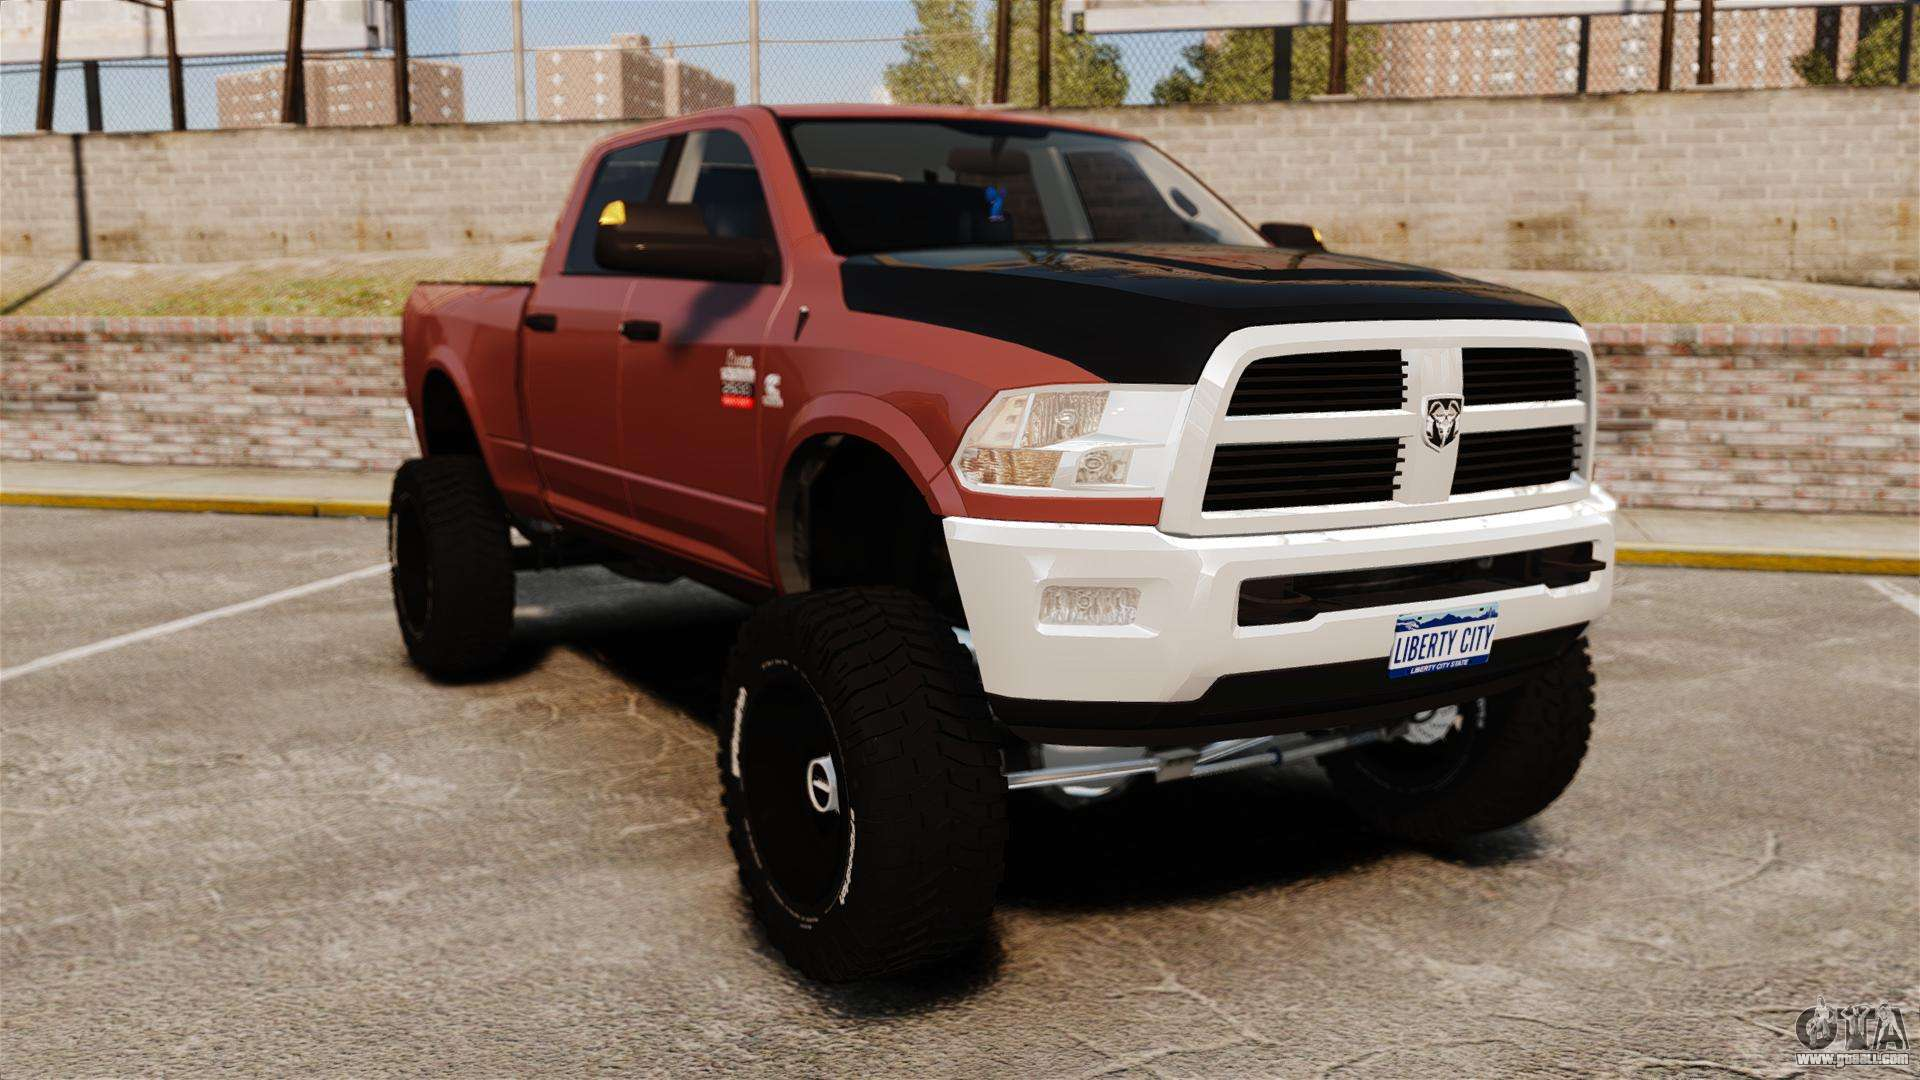 Dodge ram 2500 lifted edition 2011 for gta 4